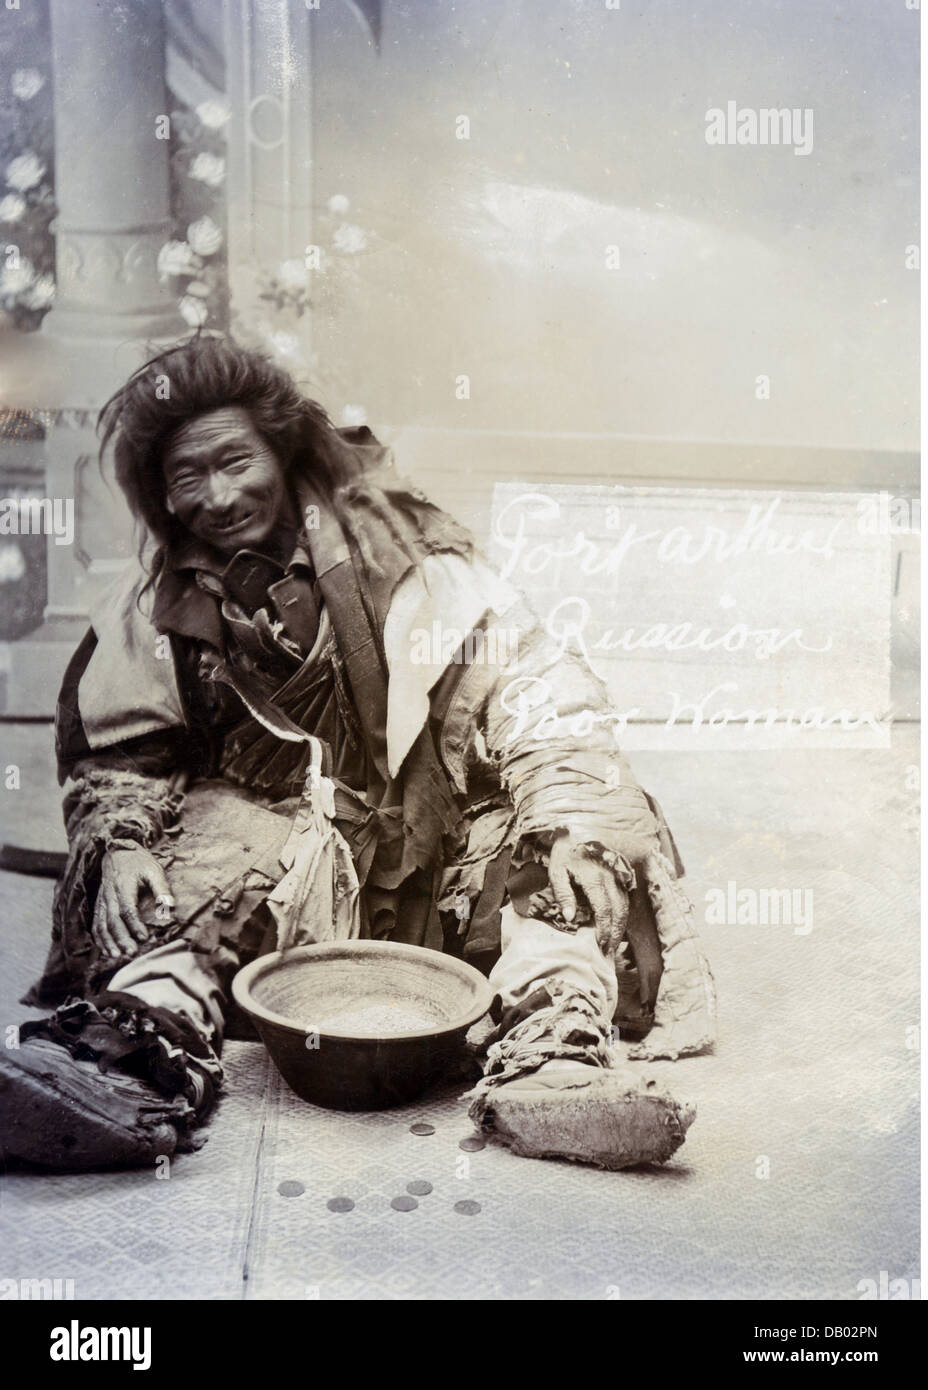 Gypsy beggar with a Russian child